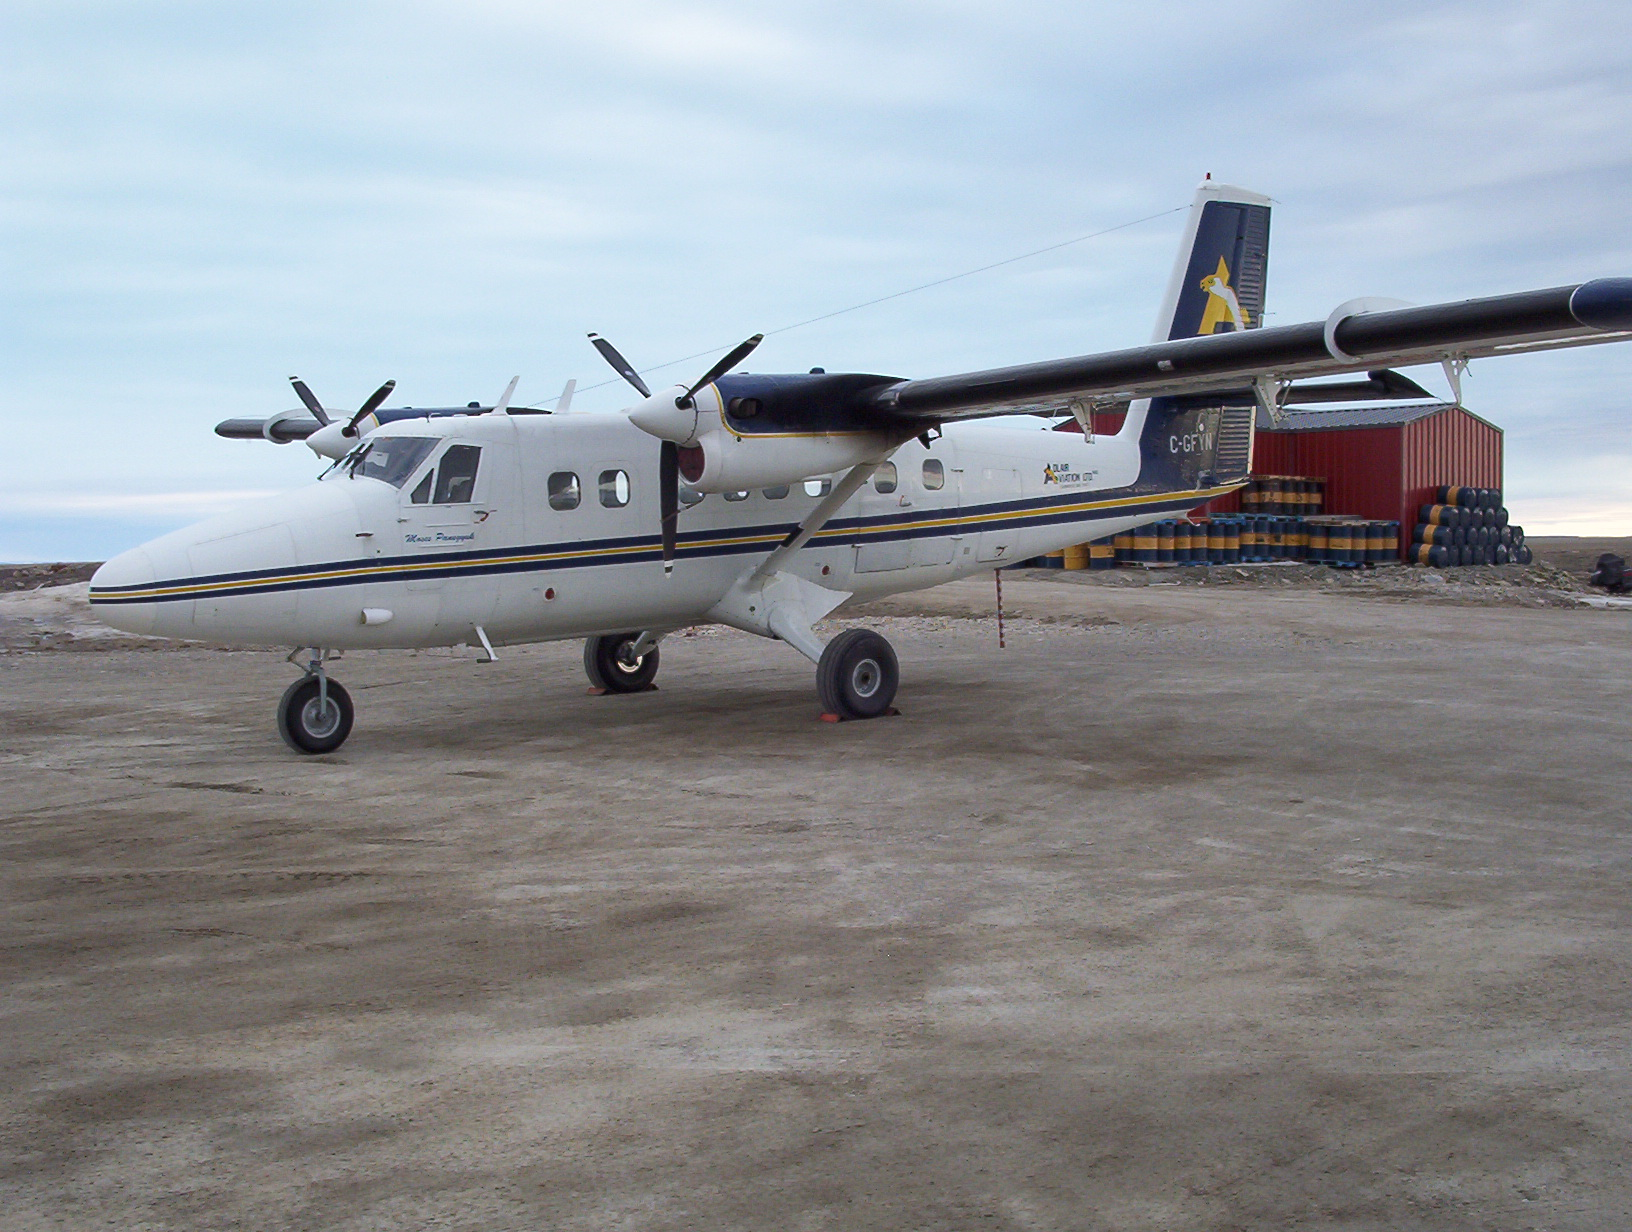 De%20Havilland%20Canada%20DHC-6%20Twin%20Otter